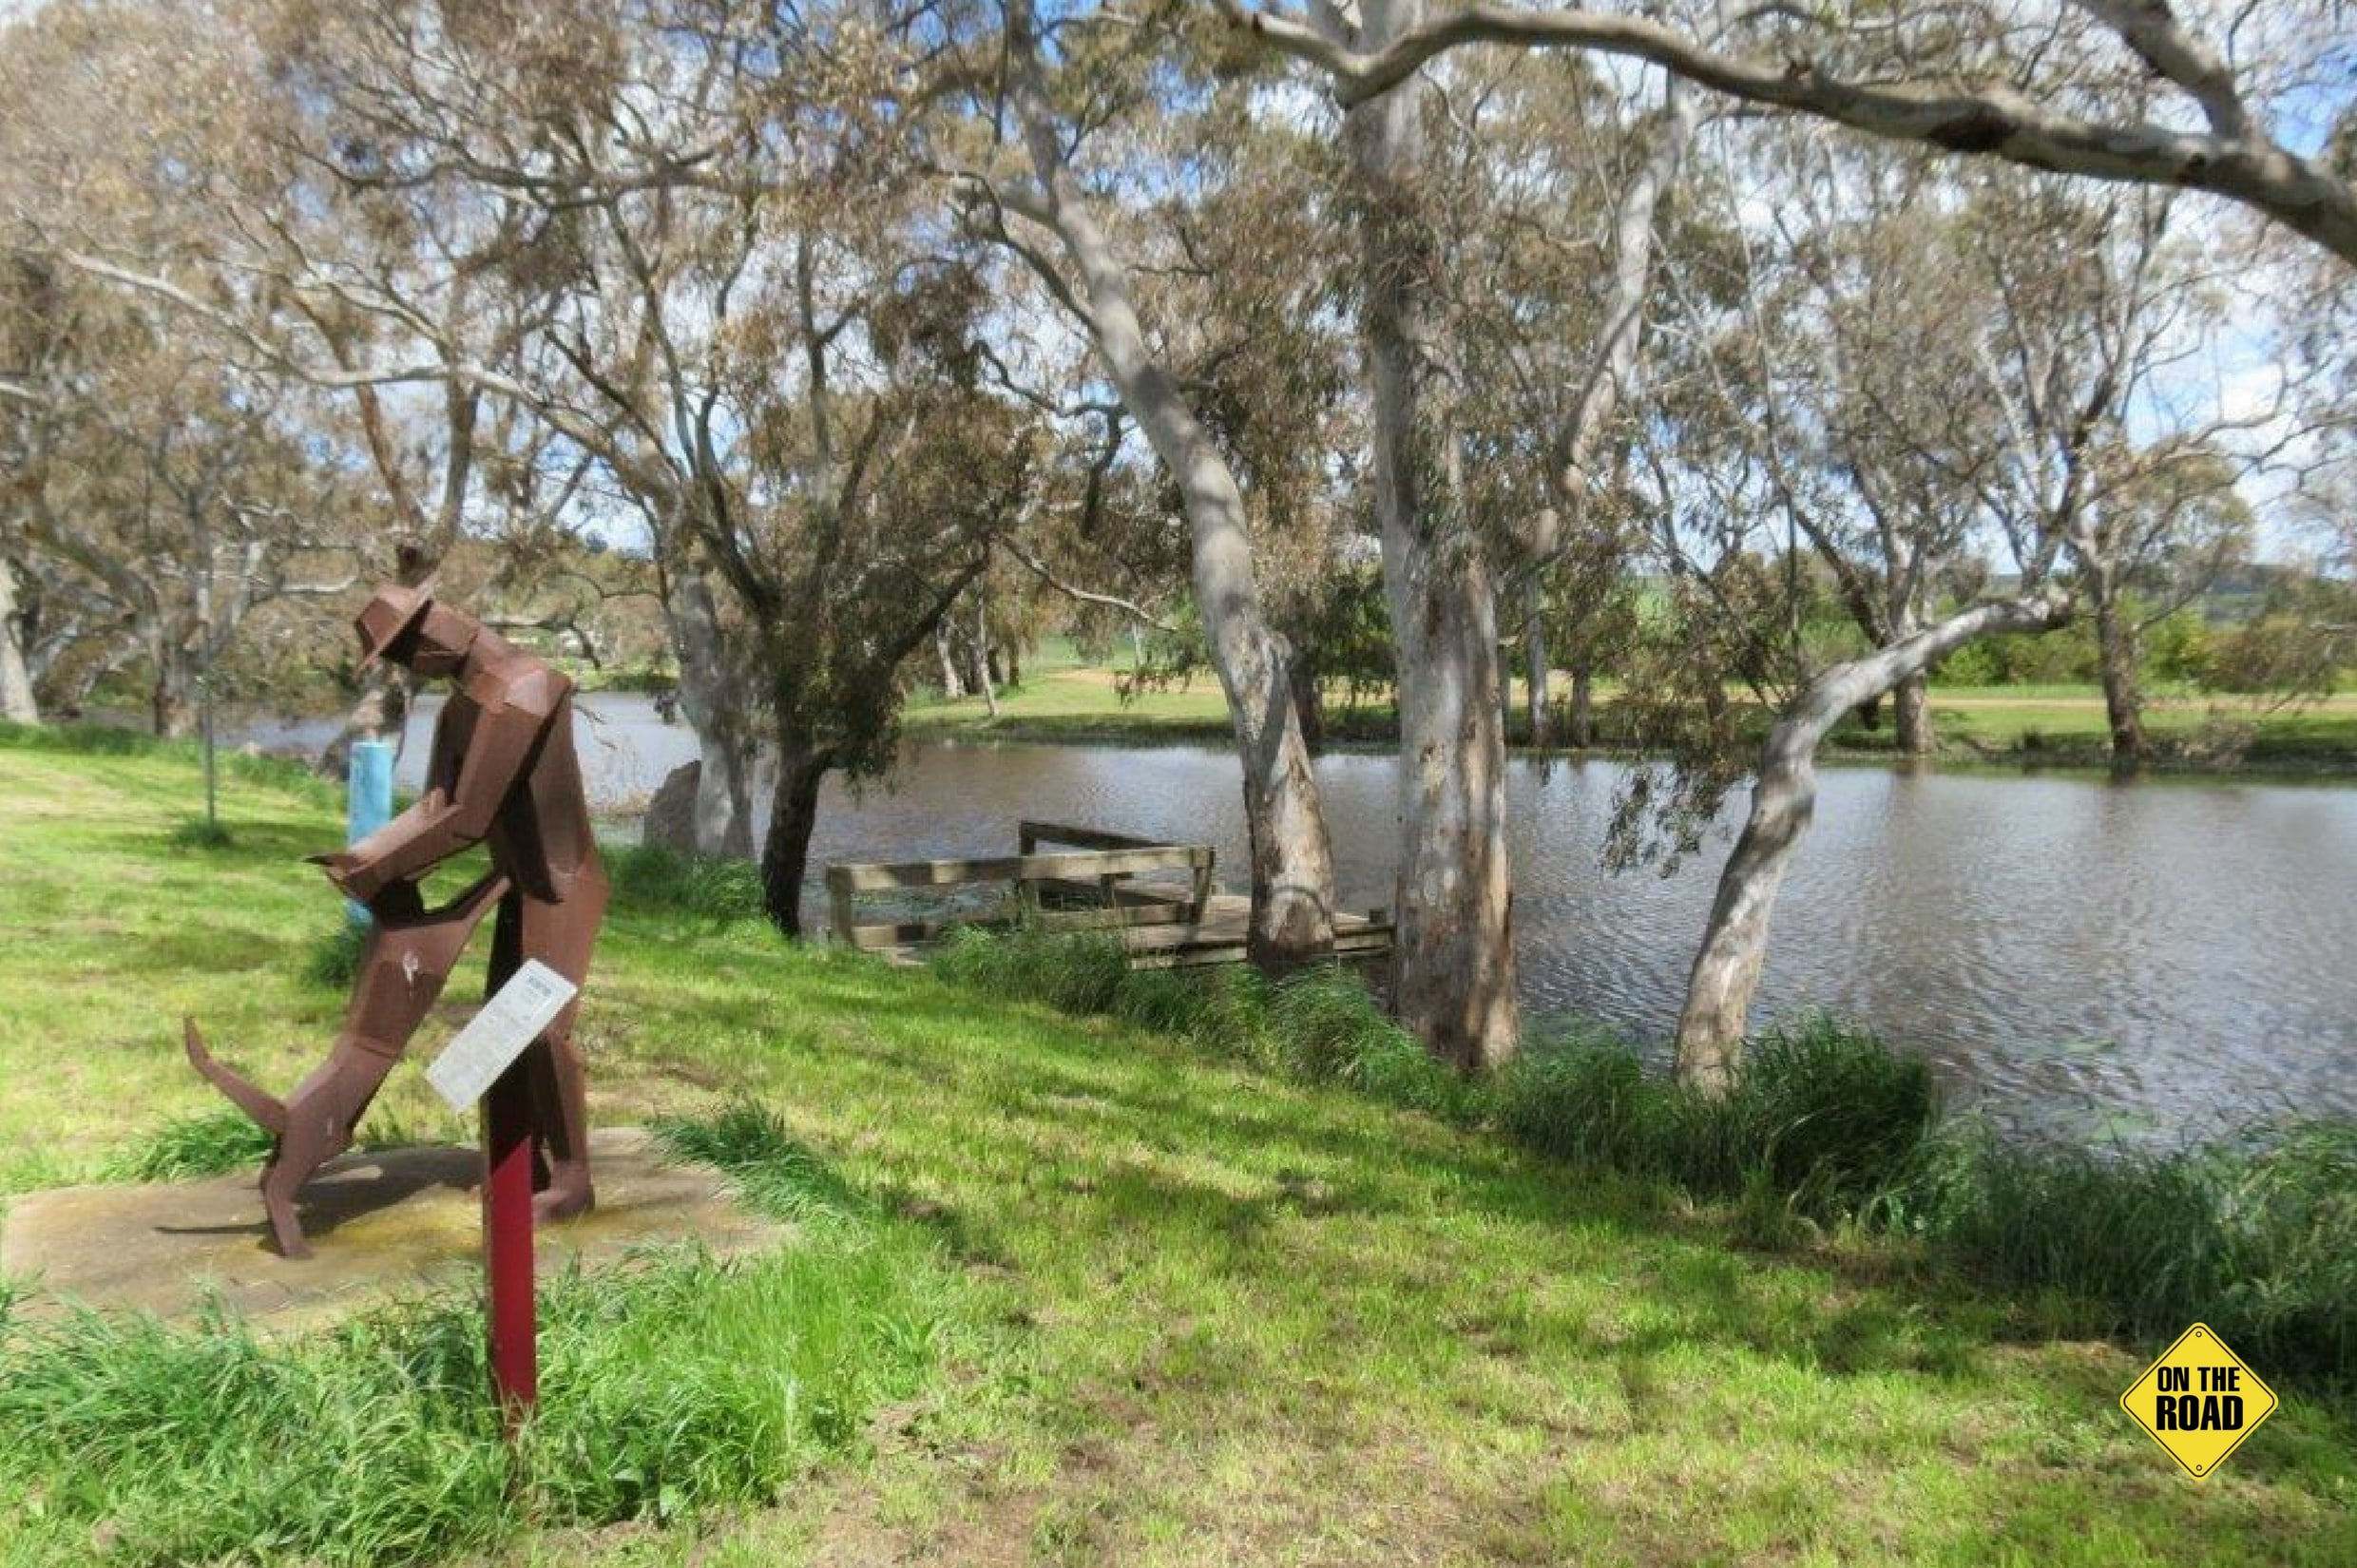 Ess Lagoon campsite with fishing landing and steel sculpture of man and kelpie